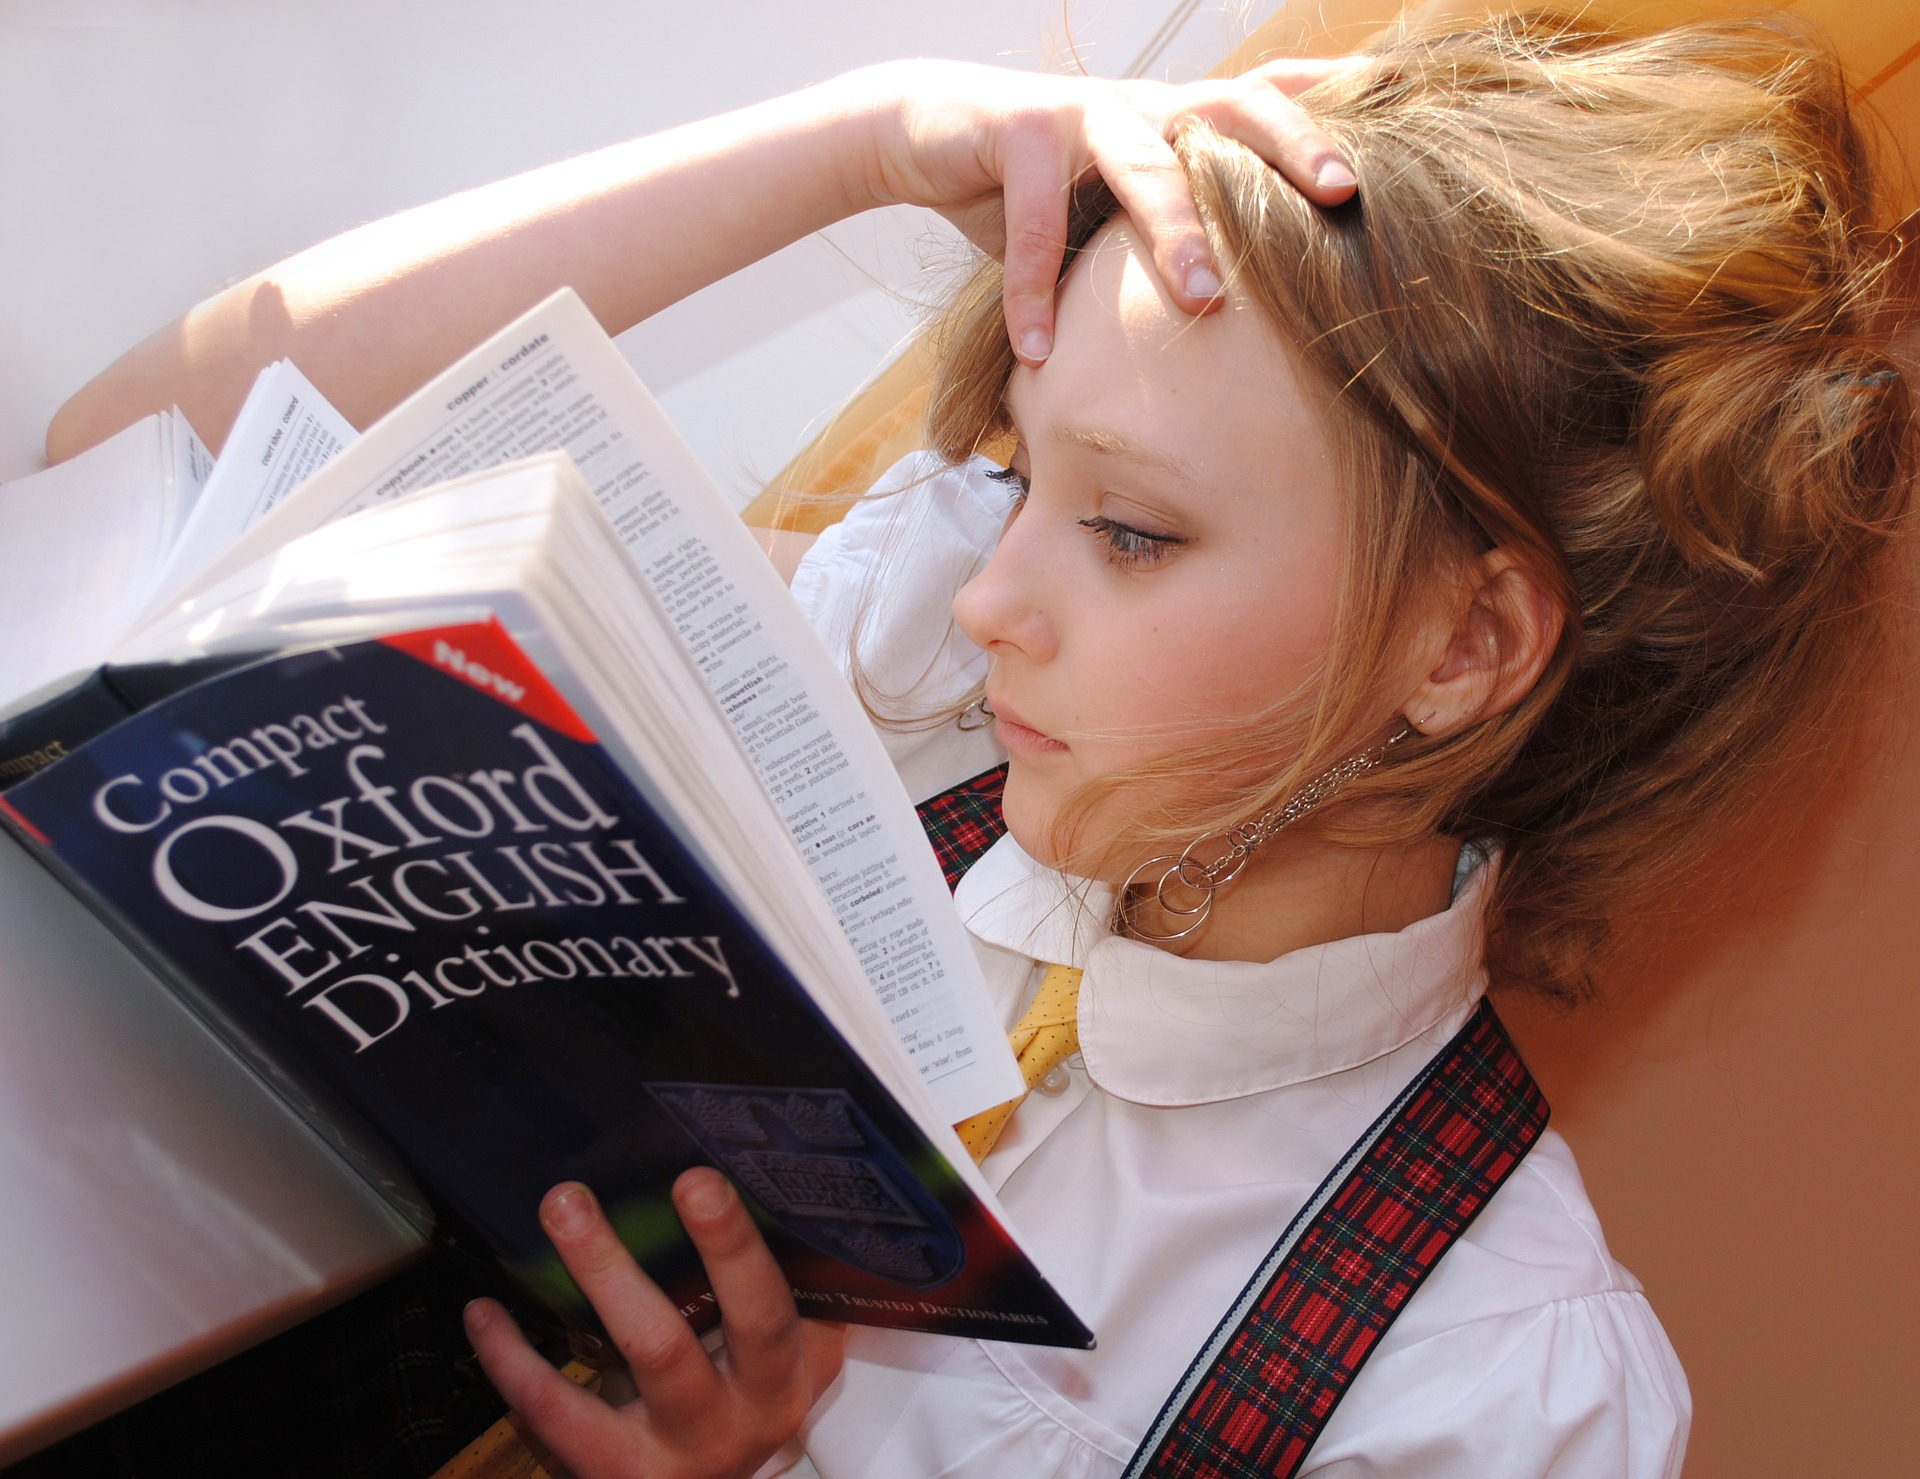 What's The Most Complete Online Reader For Students Learning Another Language?